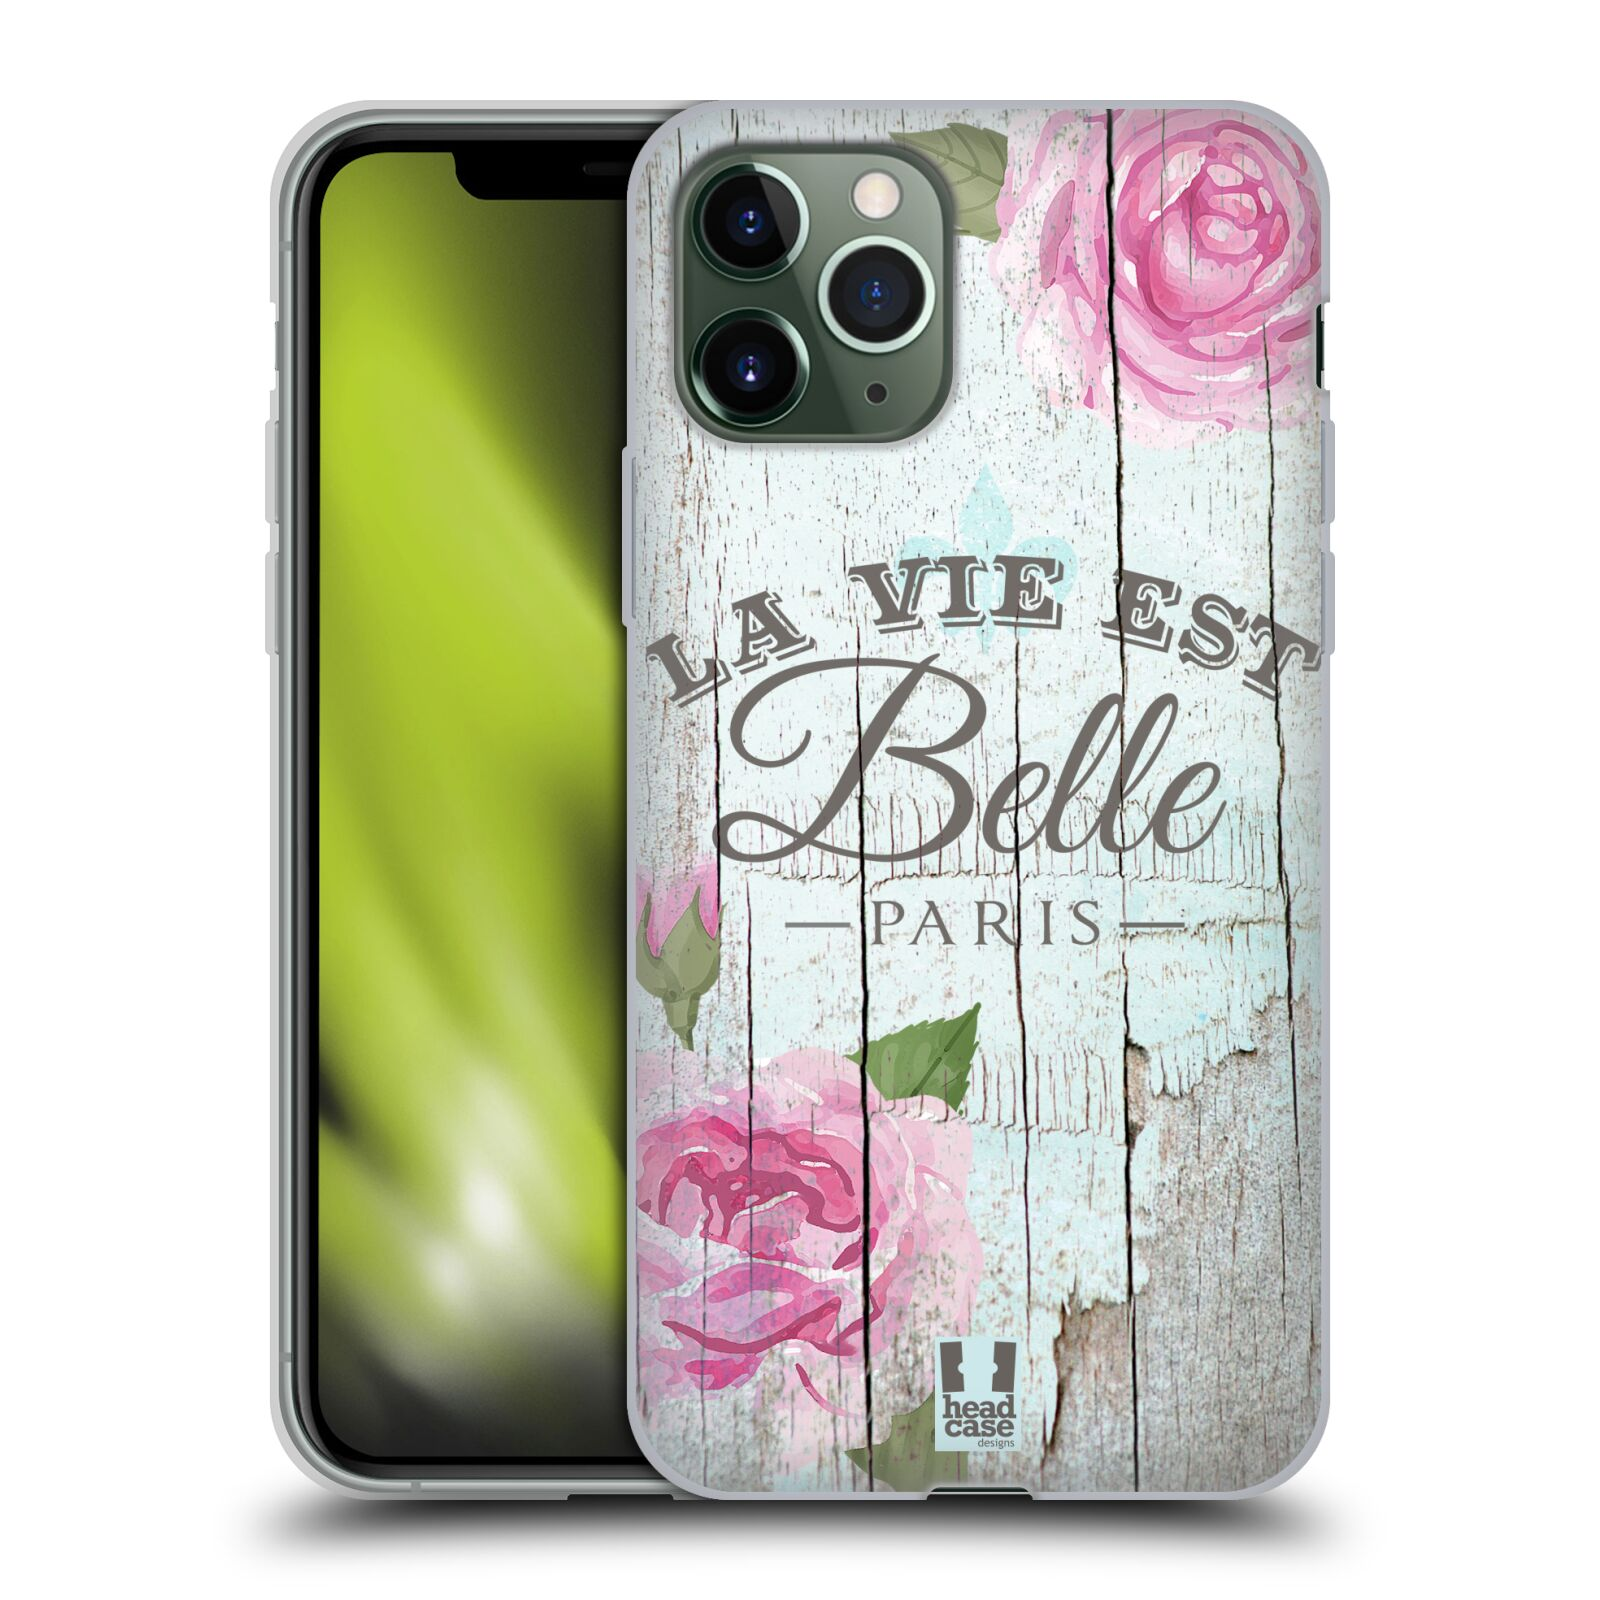 luxusni kryty iphone 7 plus | Silikonové pouzdro na mobil Apple iPhone 11 Pro - Head Case - LIFE IN THE COUNTRY BELLE